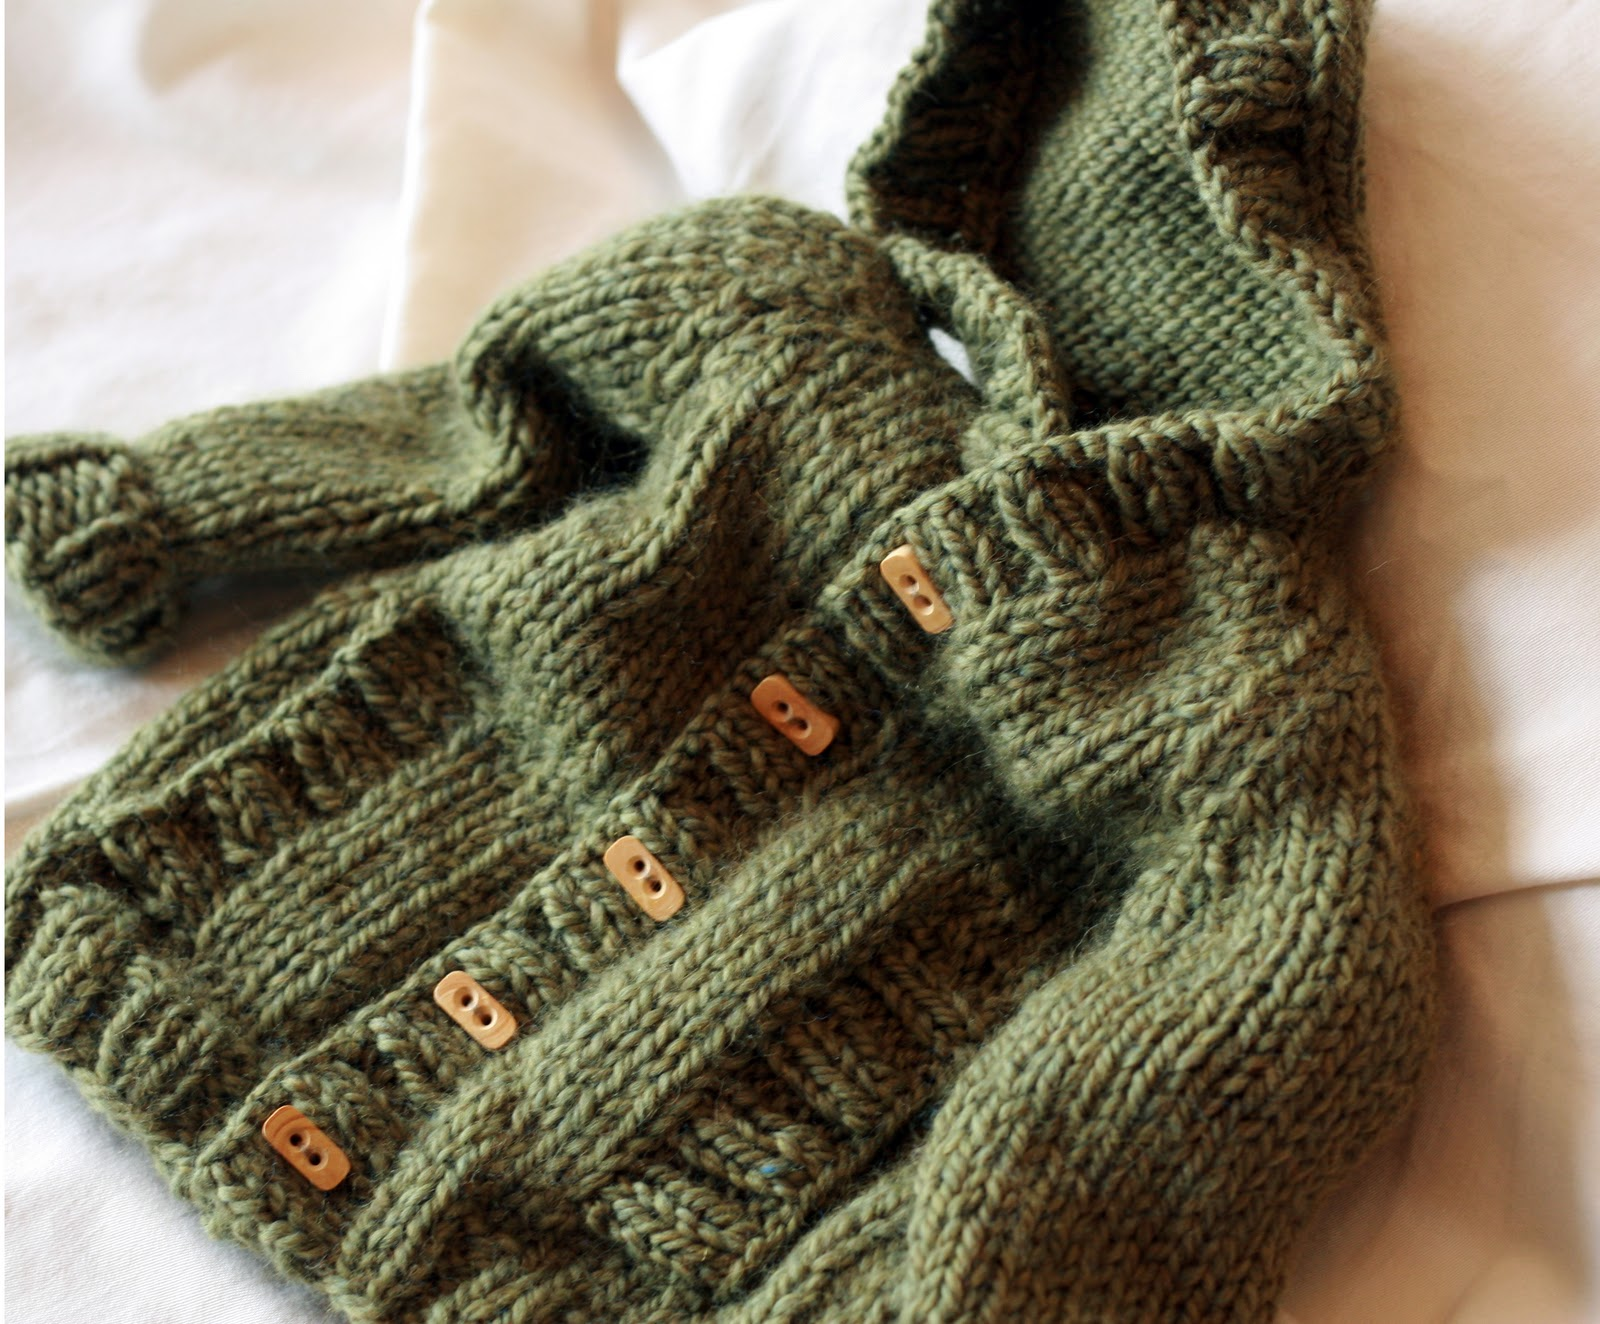 KATE PRESTON HANDKNITS /BLOG: Update: Childs Hooded ...